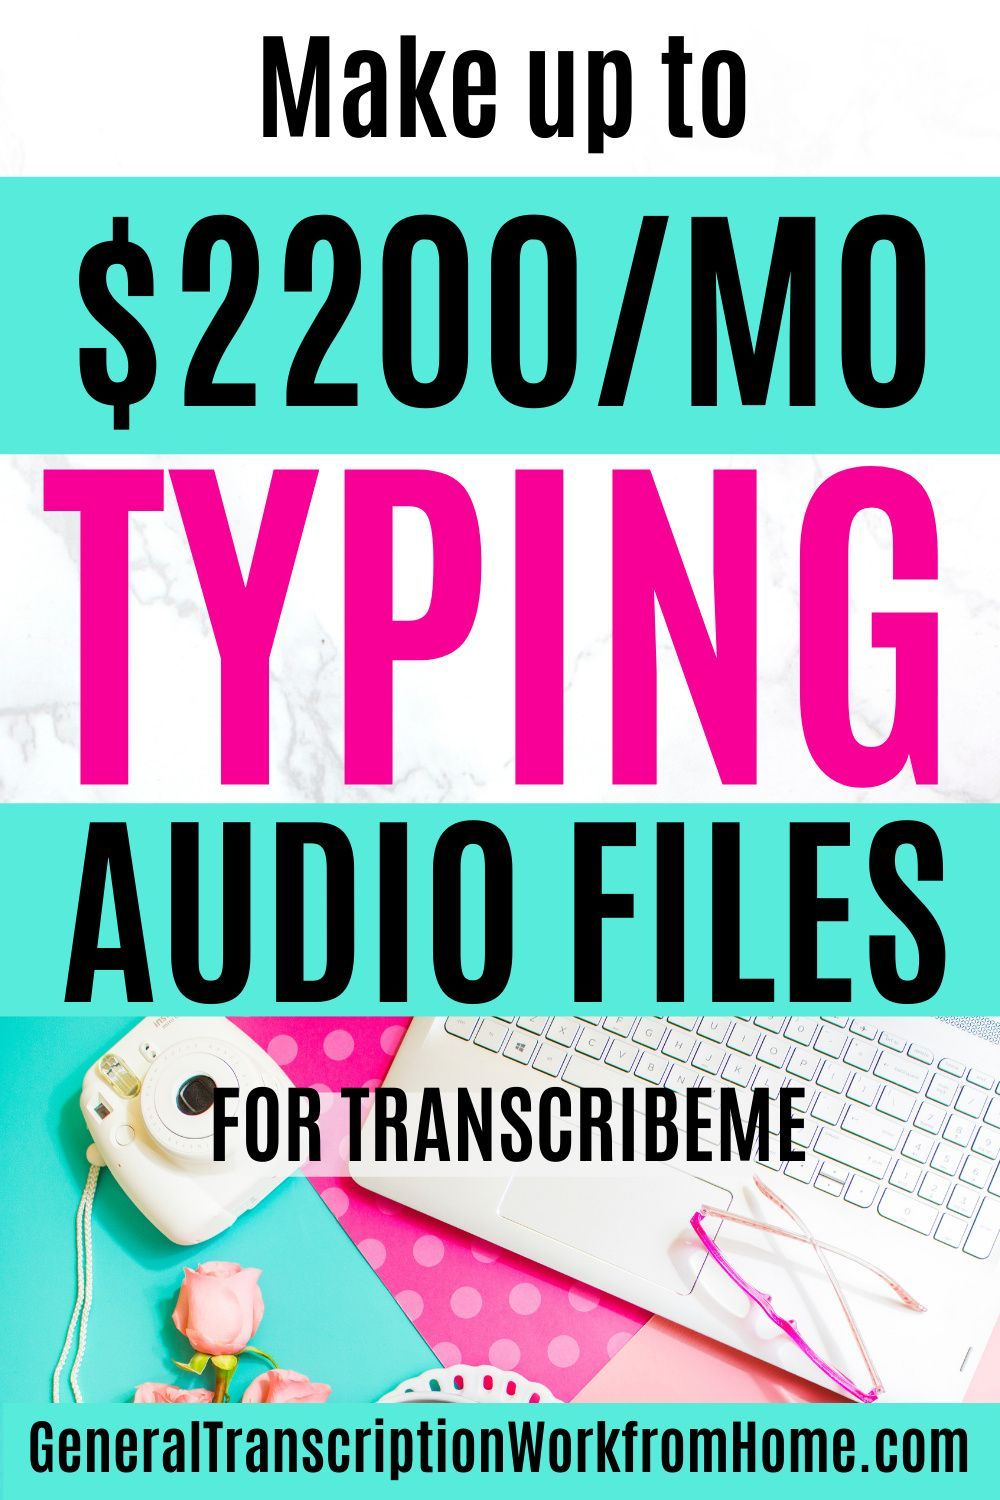 Transcription Jobs for Beginners with TranscribeMe Work